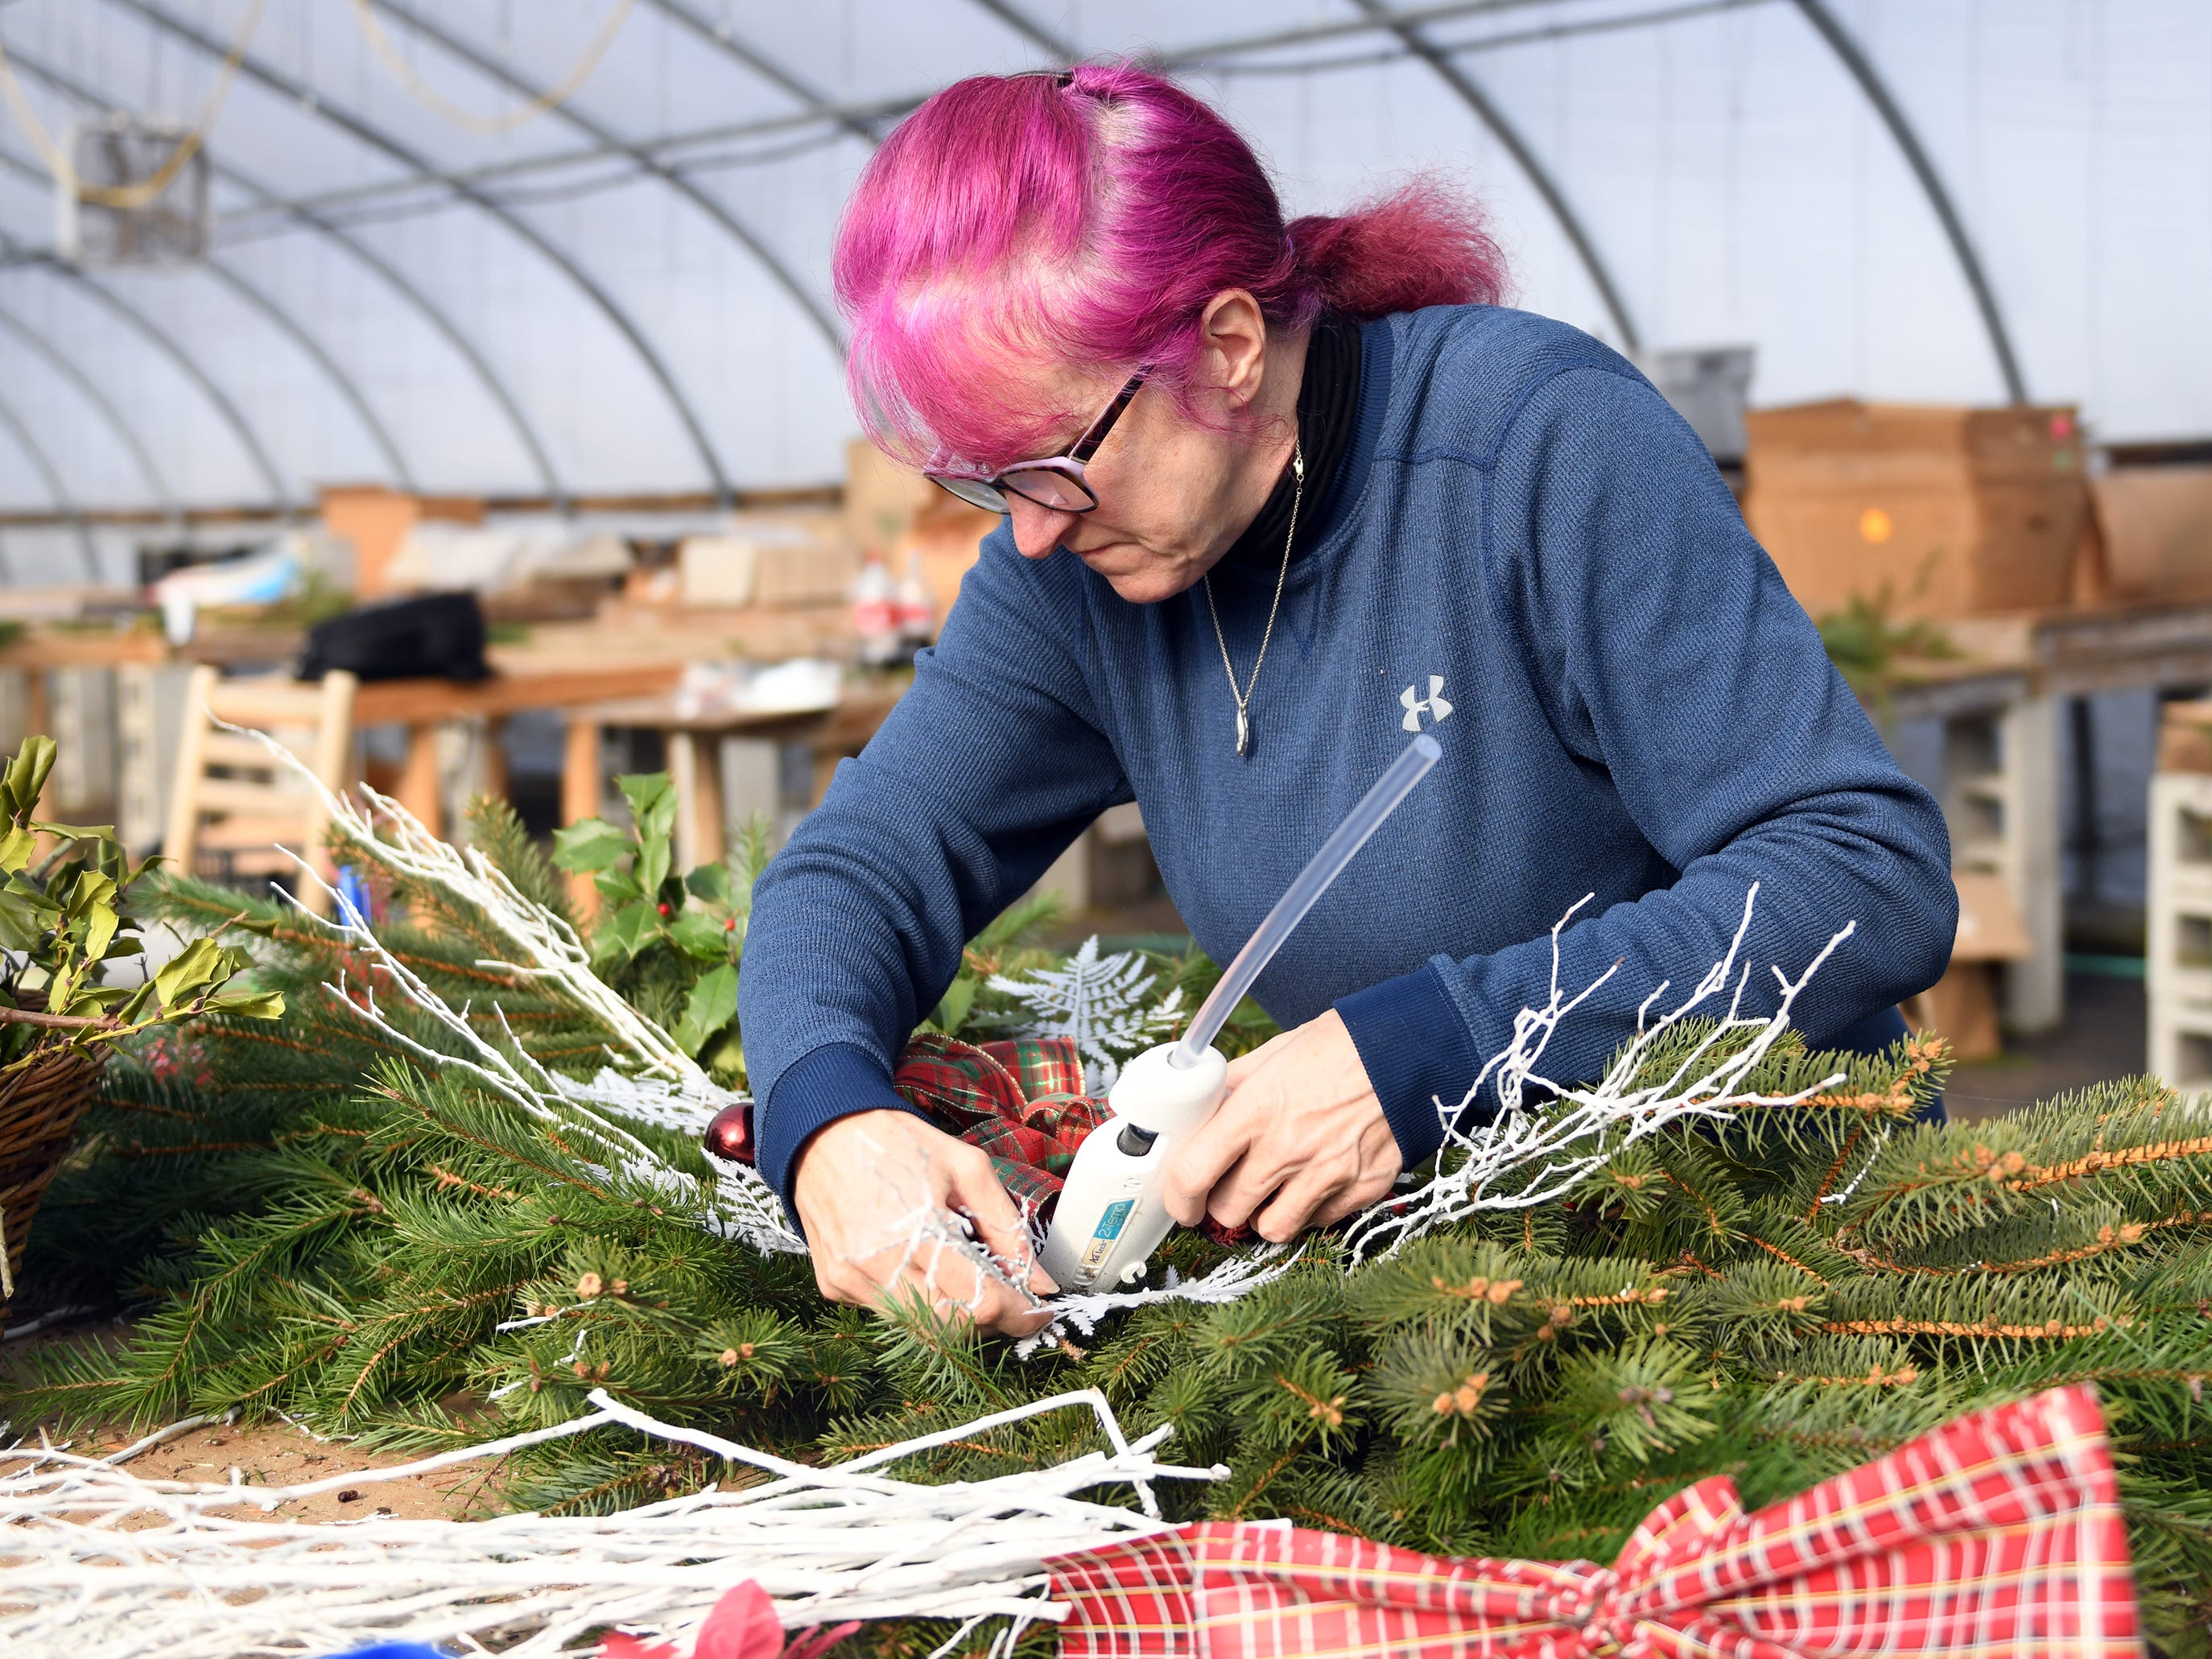 Selina Rose of Newfield decorates a Christmas wreath while working at Huffman Farms on 296 S. Blue Bell Road in Vineland on Monday, December 10, 2018.